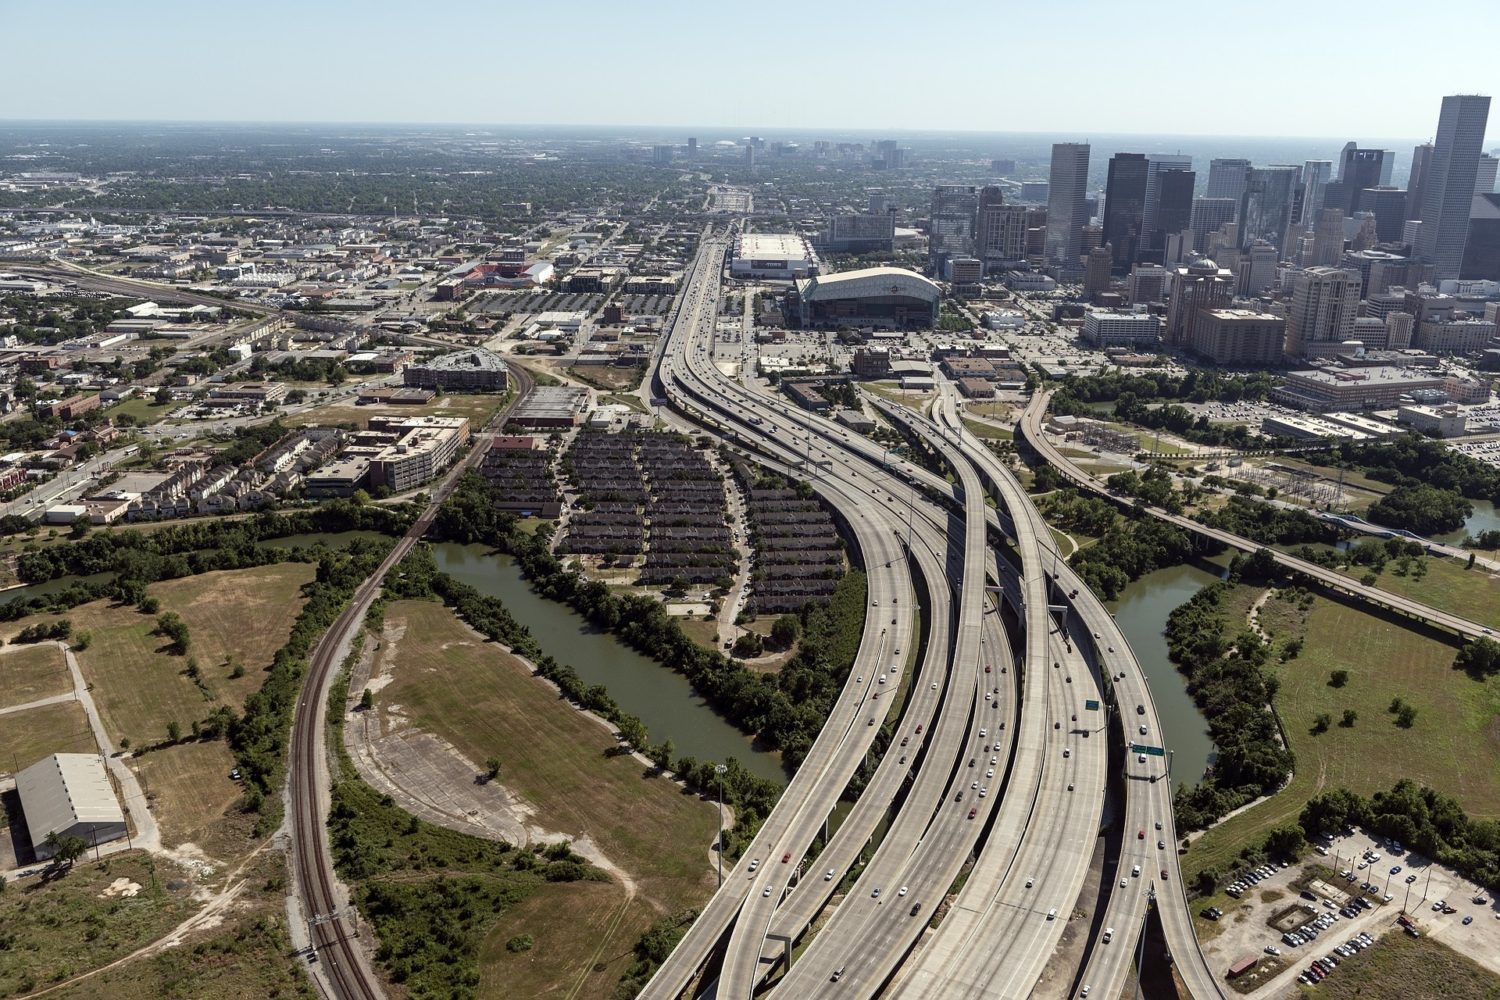 Aerial view of highways in Houston, Texas